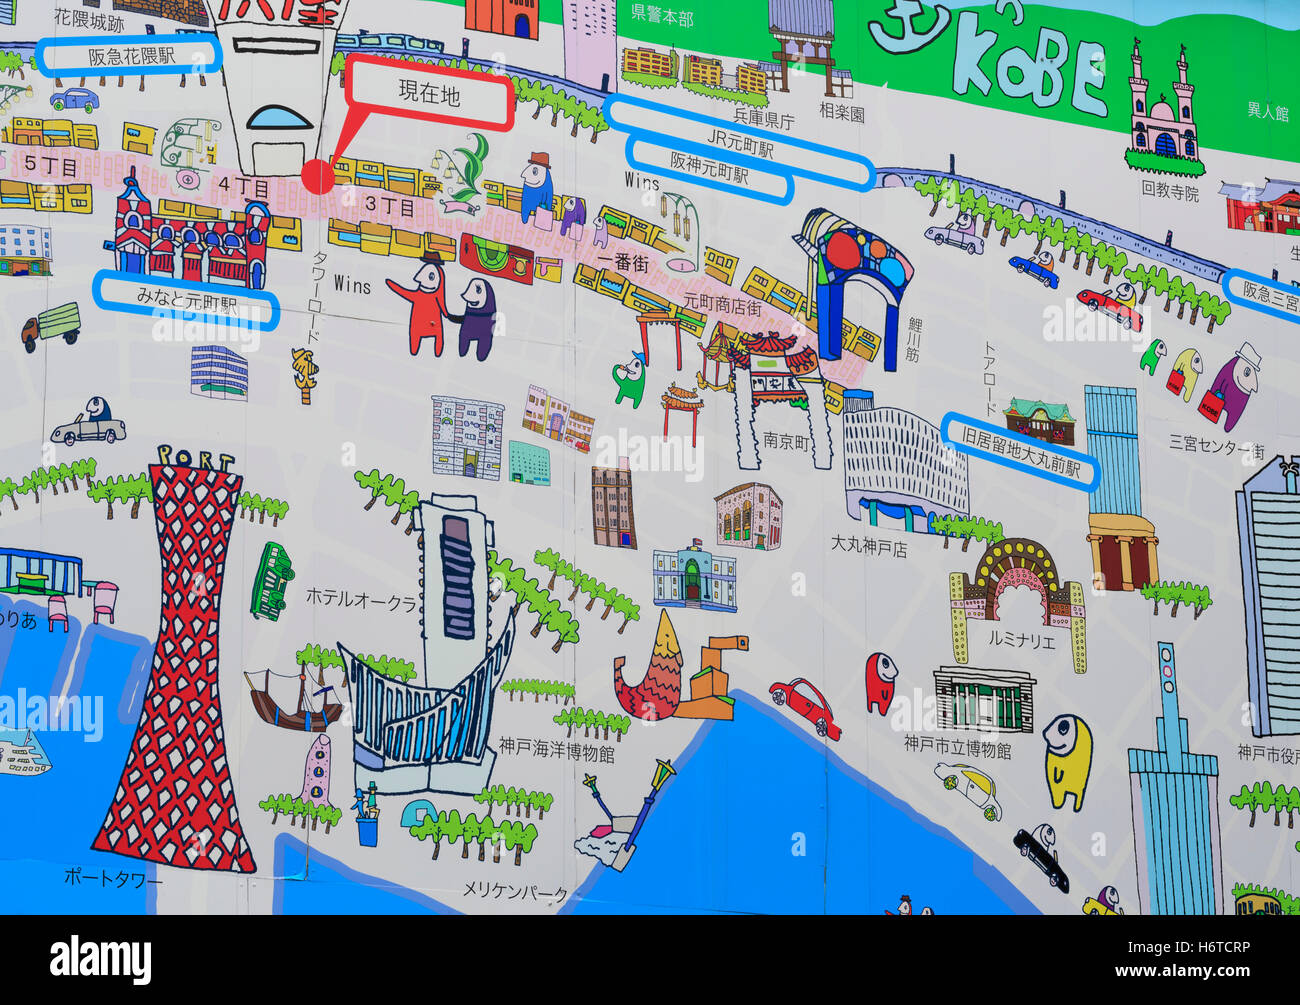 Map of Kobe City, Honshu Island, Japan, Asia Stock Photo